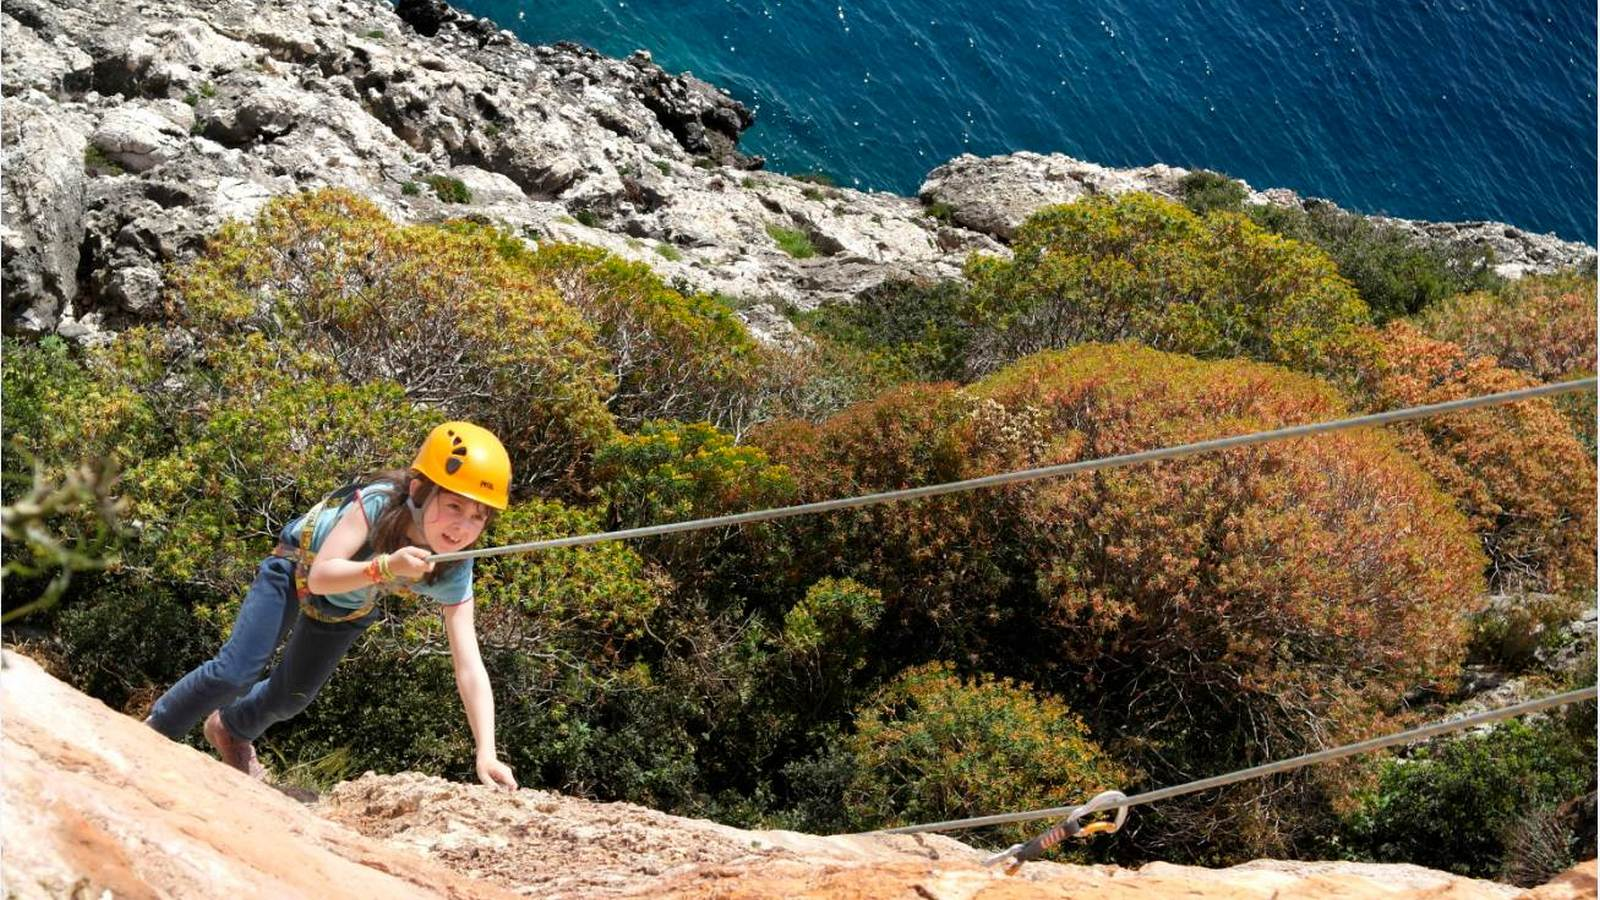 The Romanos a Luxury Collection Resort SPA Costa Navarino Messinia Greece Activities Navarino Outdoors Rock Climbing Kids